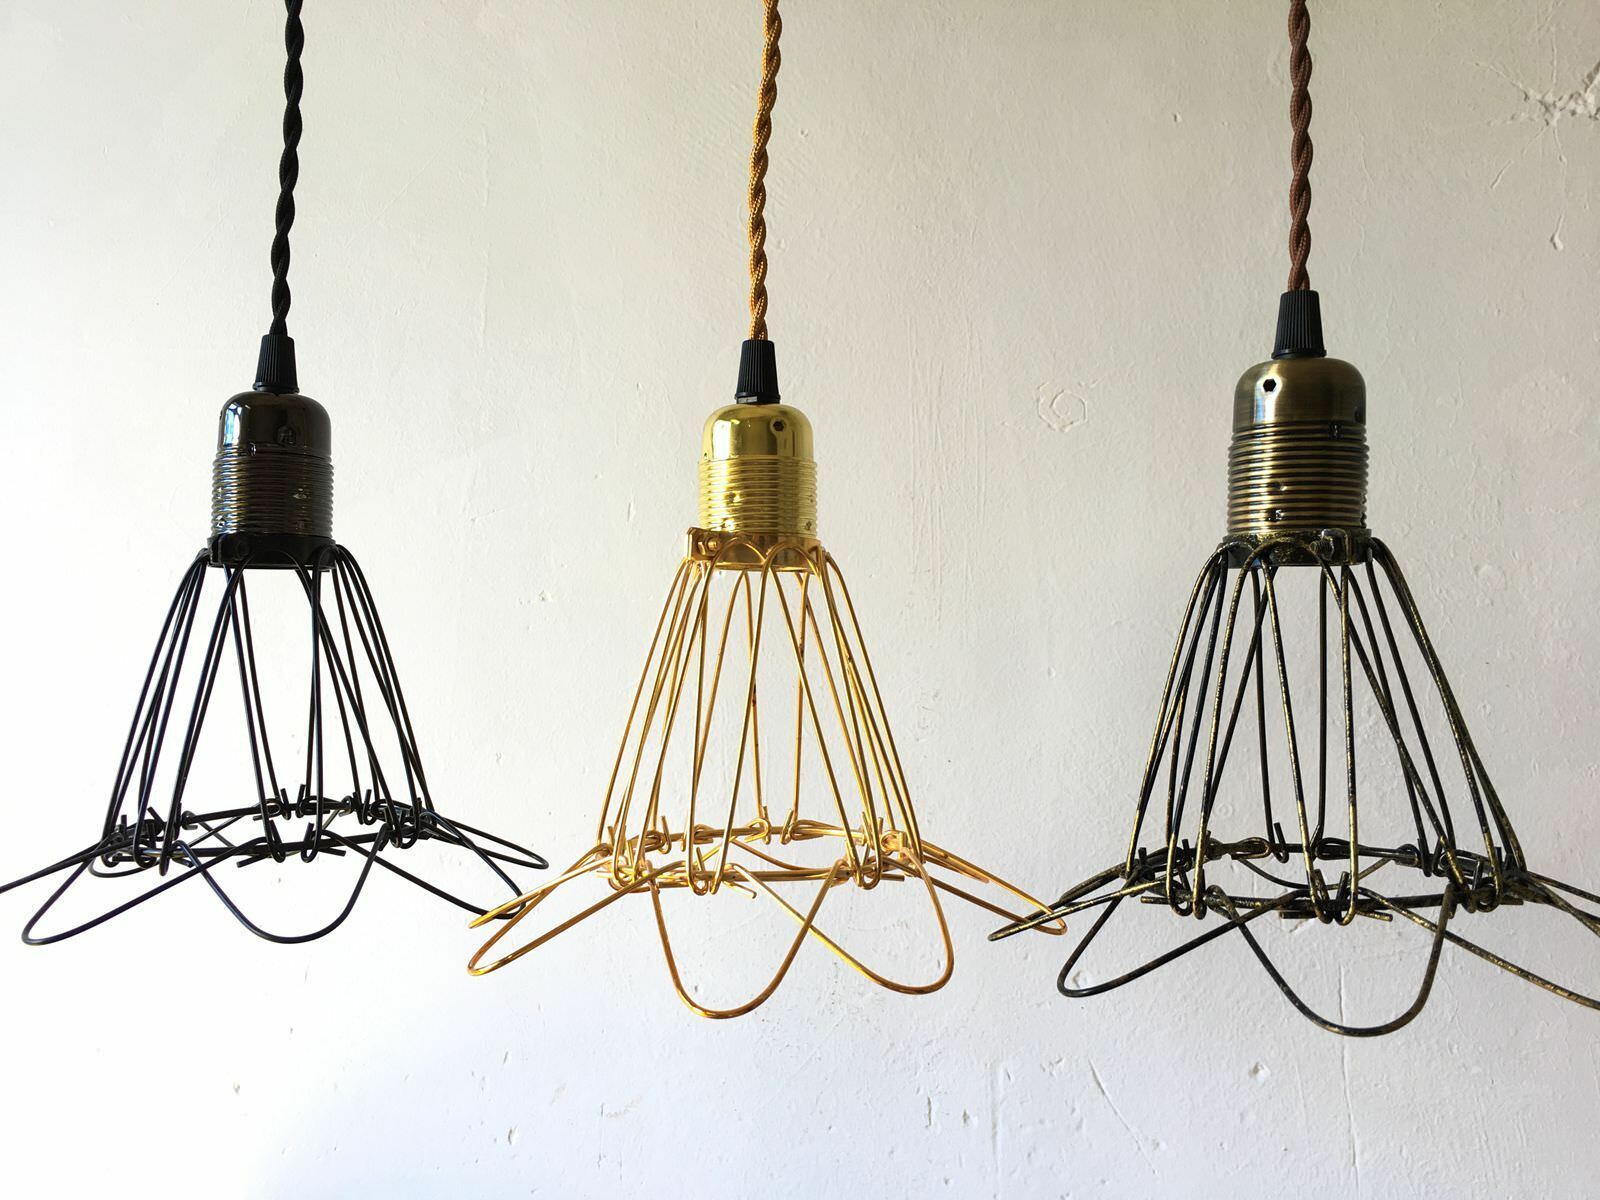 Vintage industrial metal wire cage hanging lamp shade pendant light vintage industrial metal wire cage hanging lamp shade pendant light chandelier 1 of 3free shipping greentooth Image collections